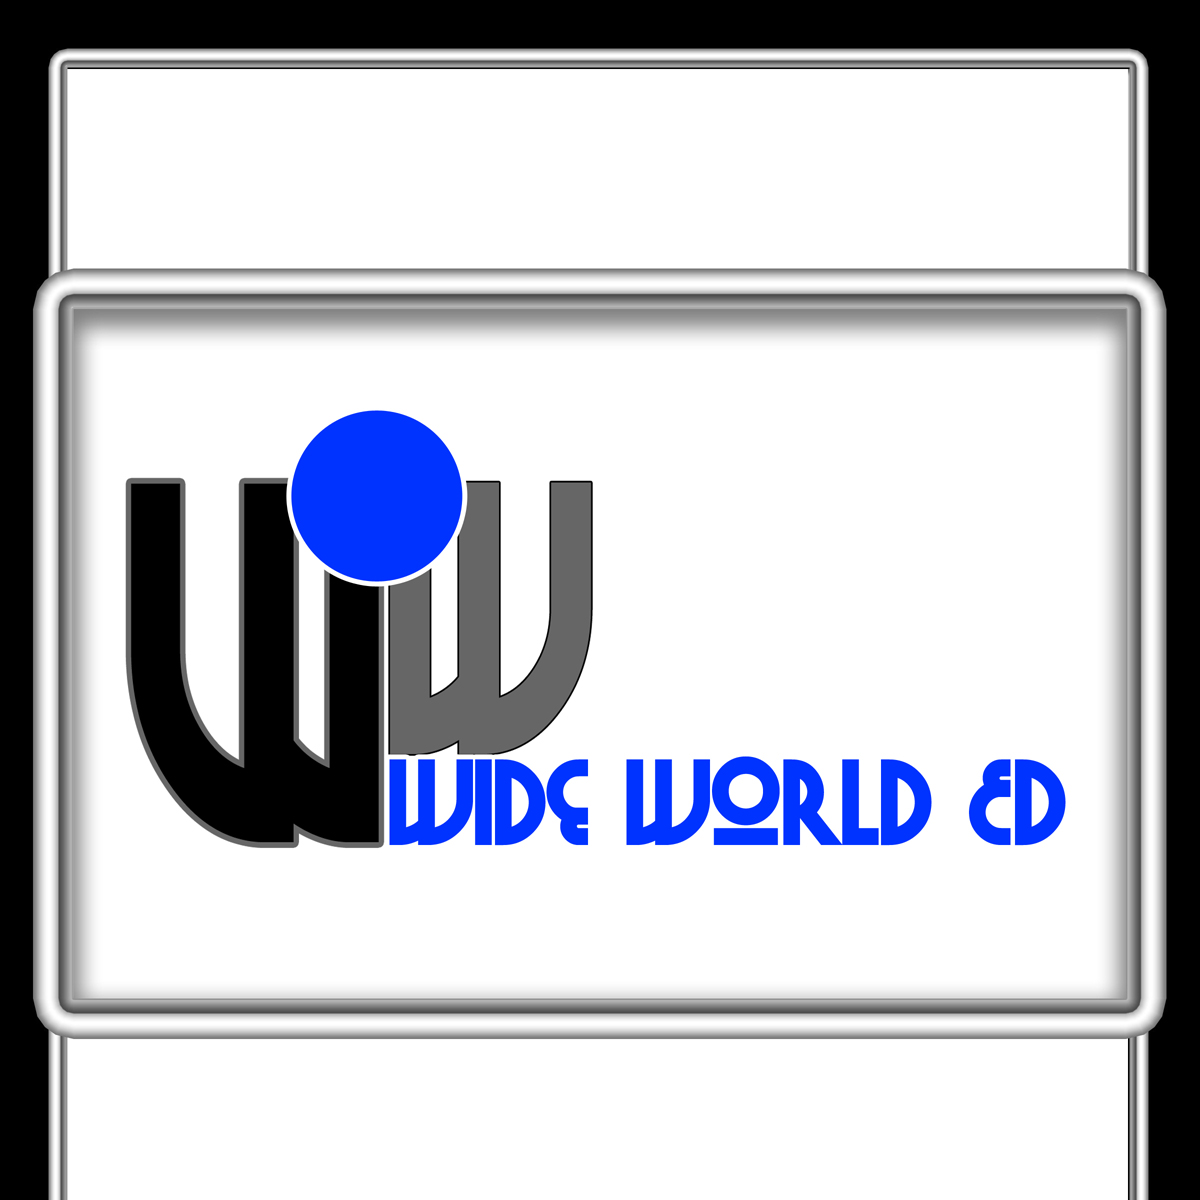 Logo Design by MITUCA ANDREI - Entry No. 6 in the Logo Design Contest New Logo Design for Wide World Ed.